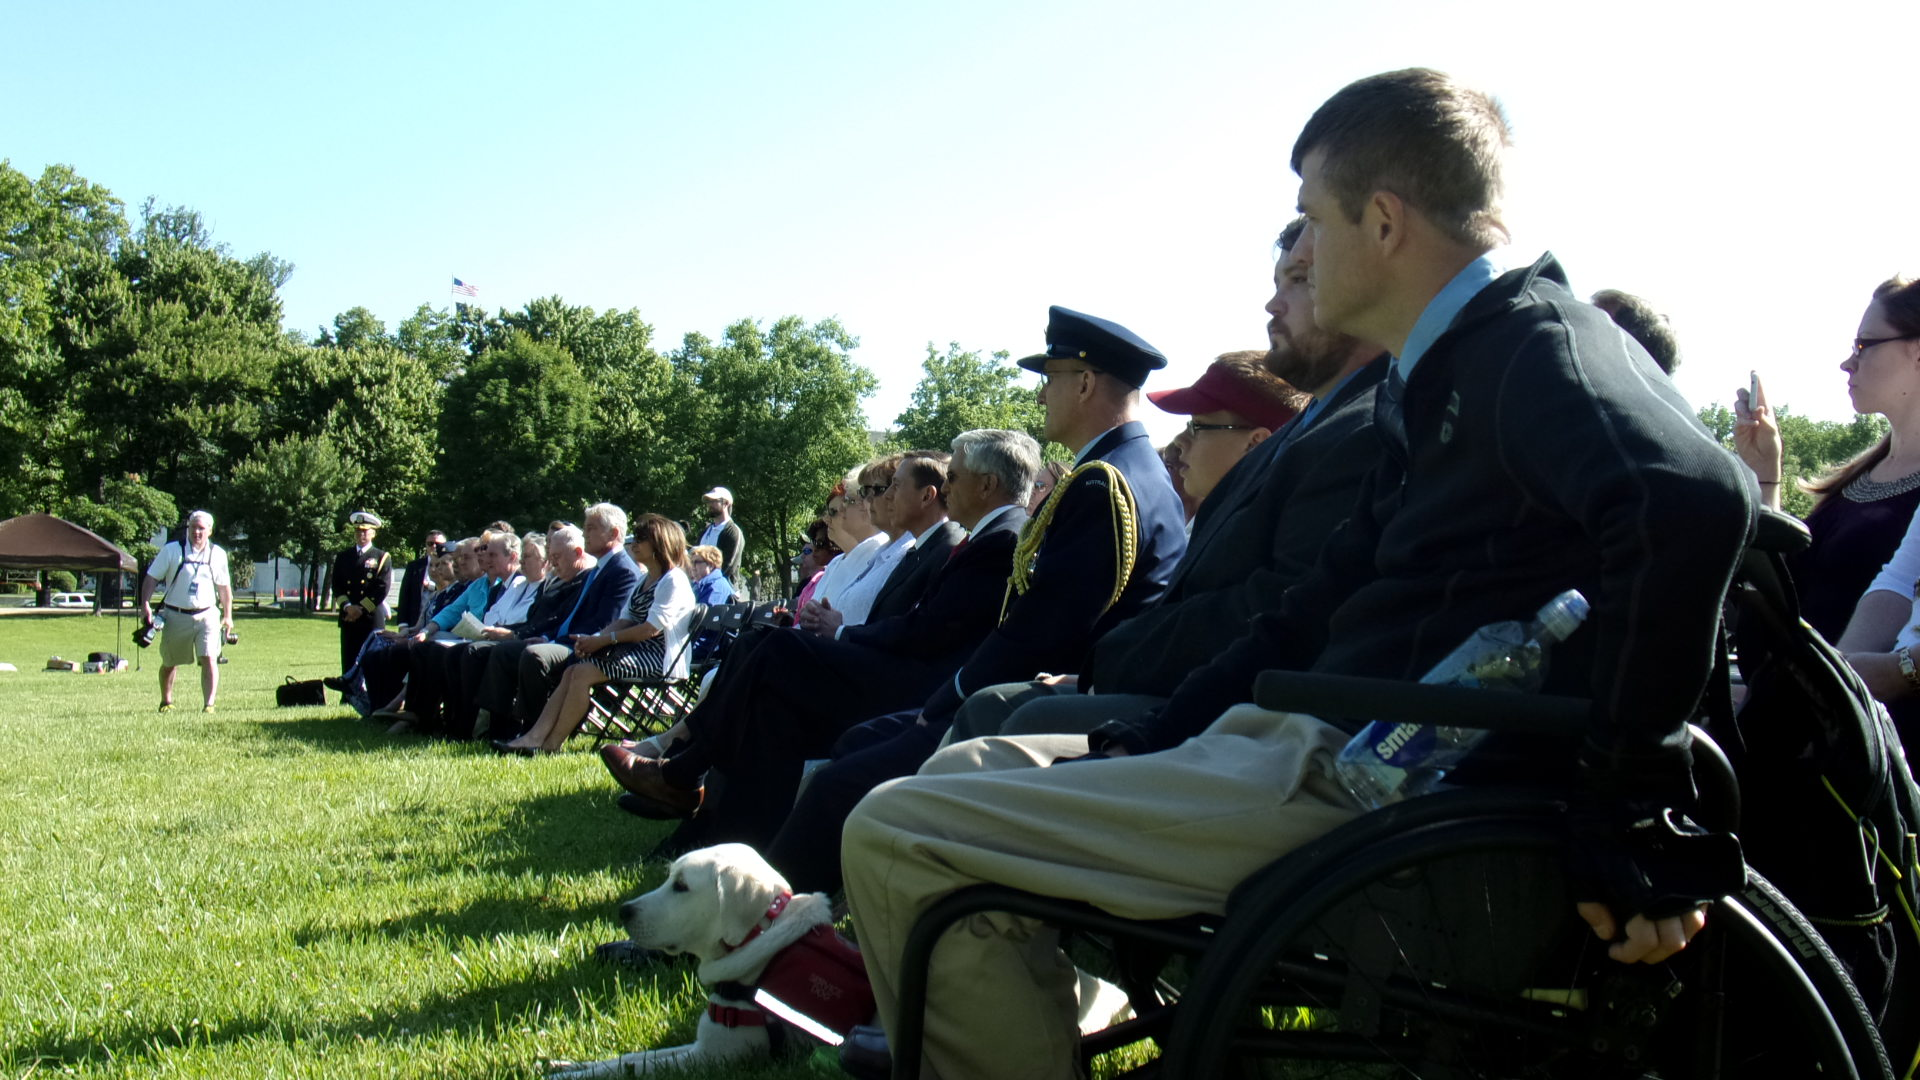 On Memorial Day weekend, the names of the fallen